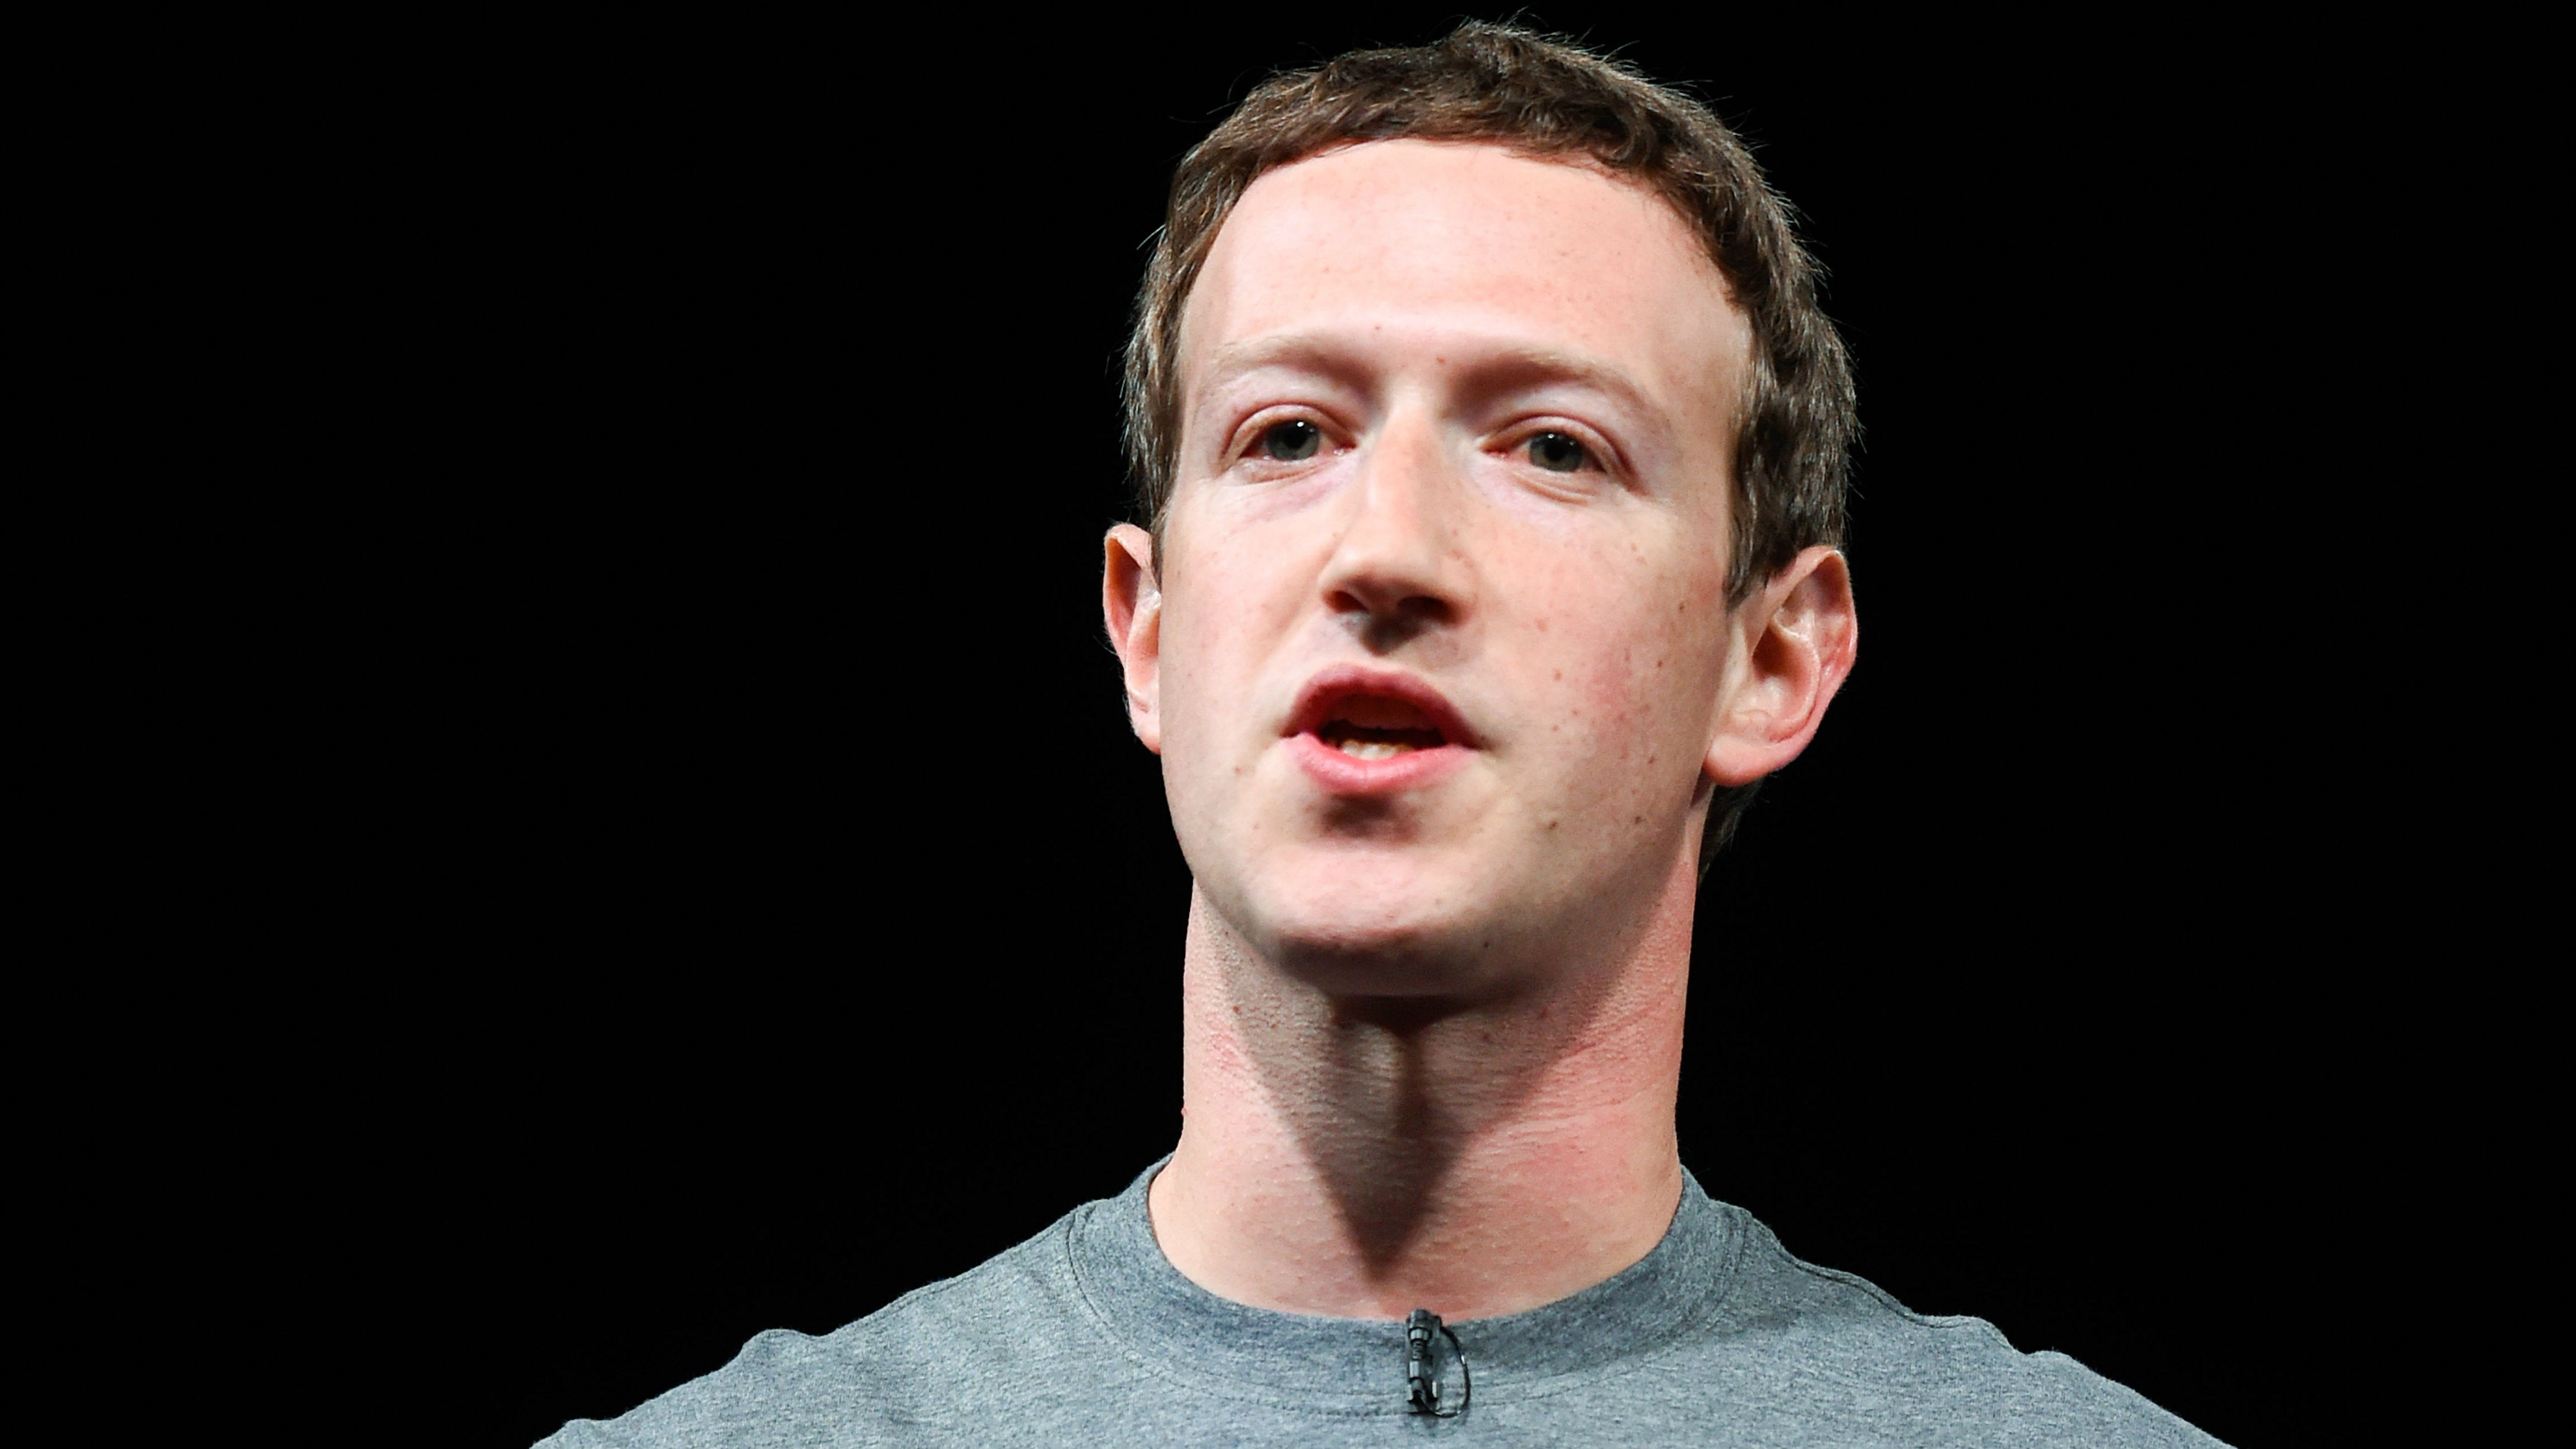 We Need To Stop Taking Facebook's Word For It